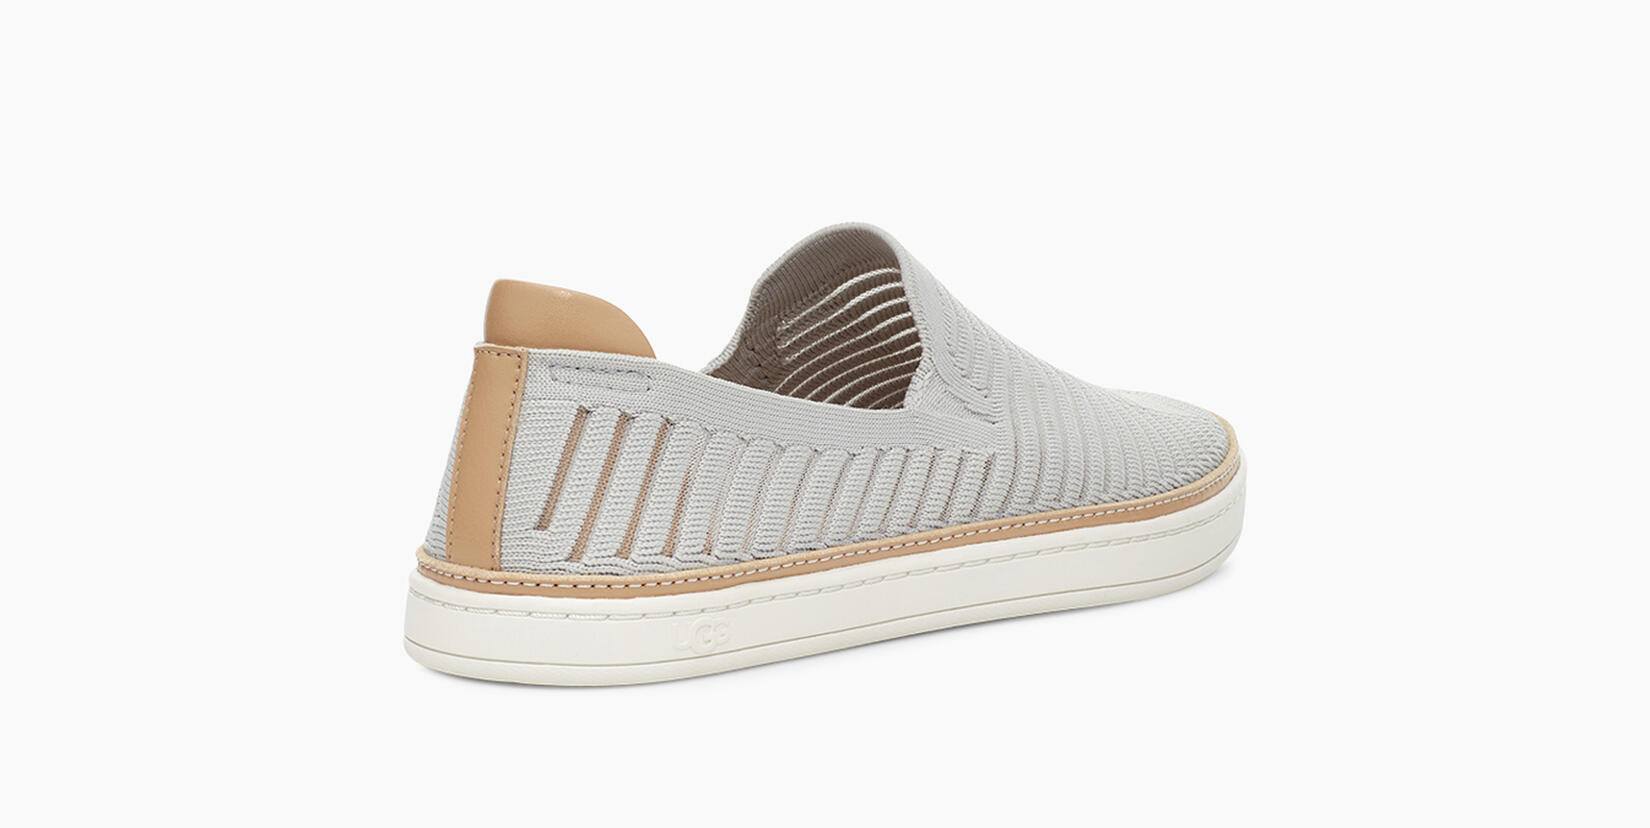 Sammy Breeze Slip On